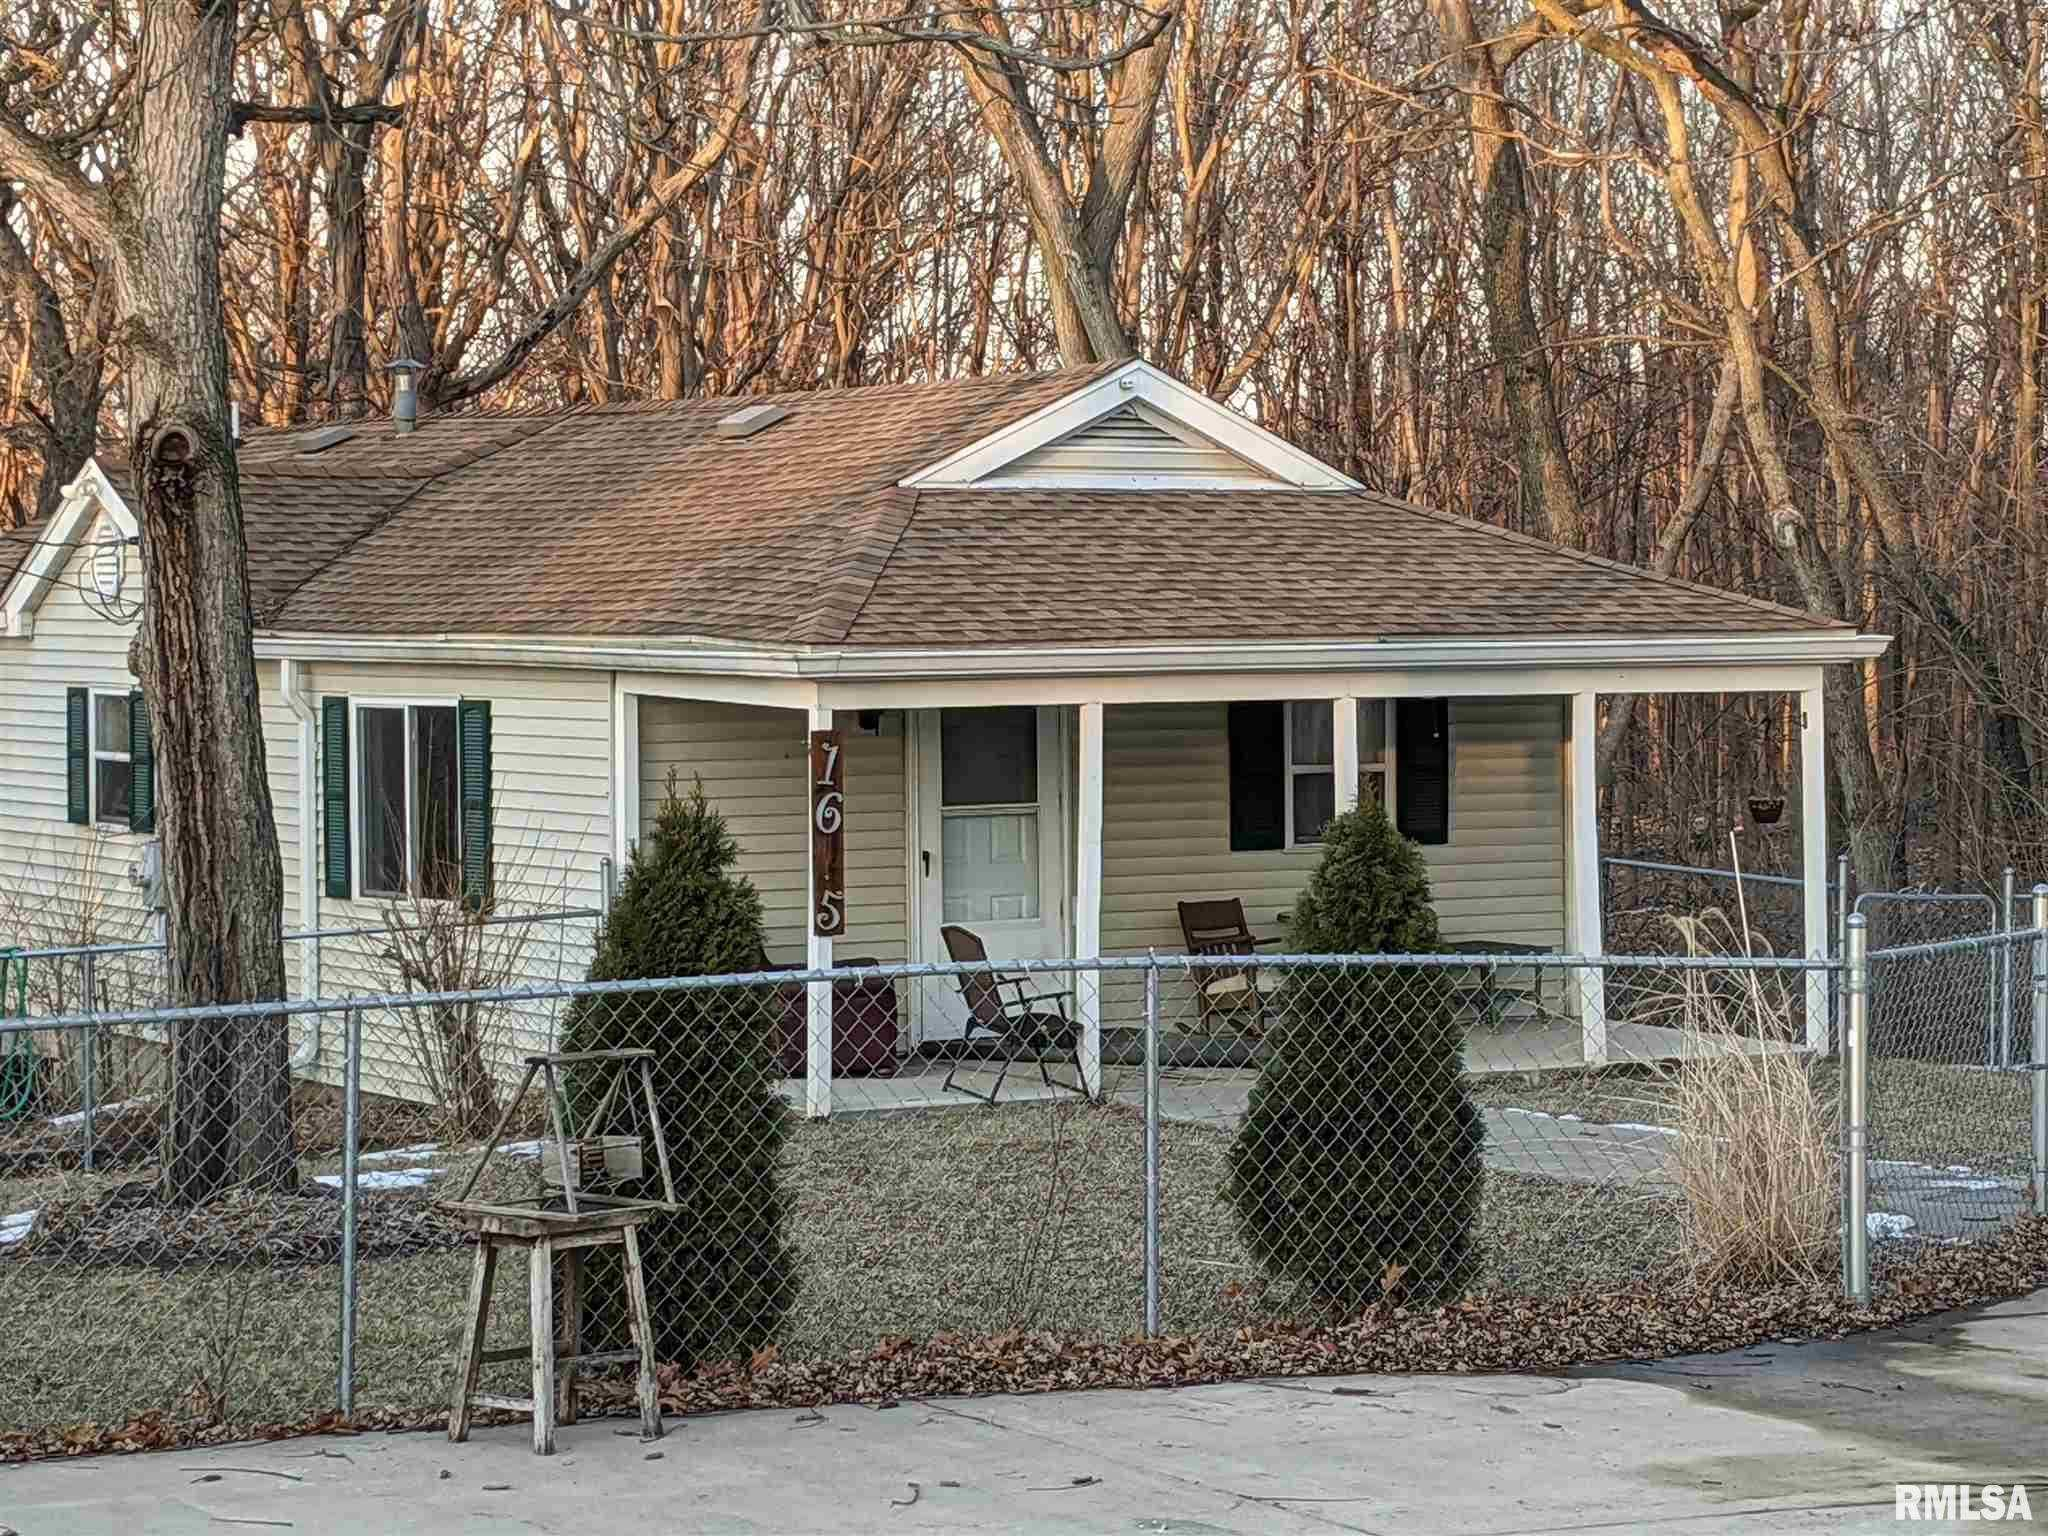 $96,000 - 2Br/2Ba -  for Sale in Unavailable, East Peoria